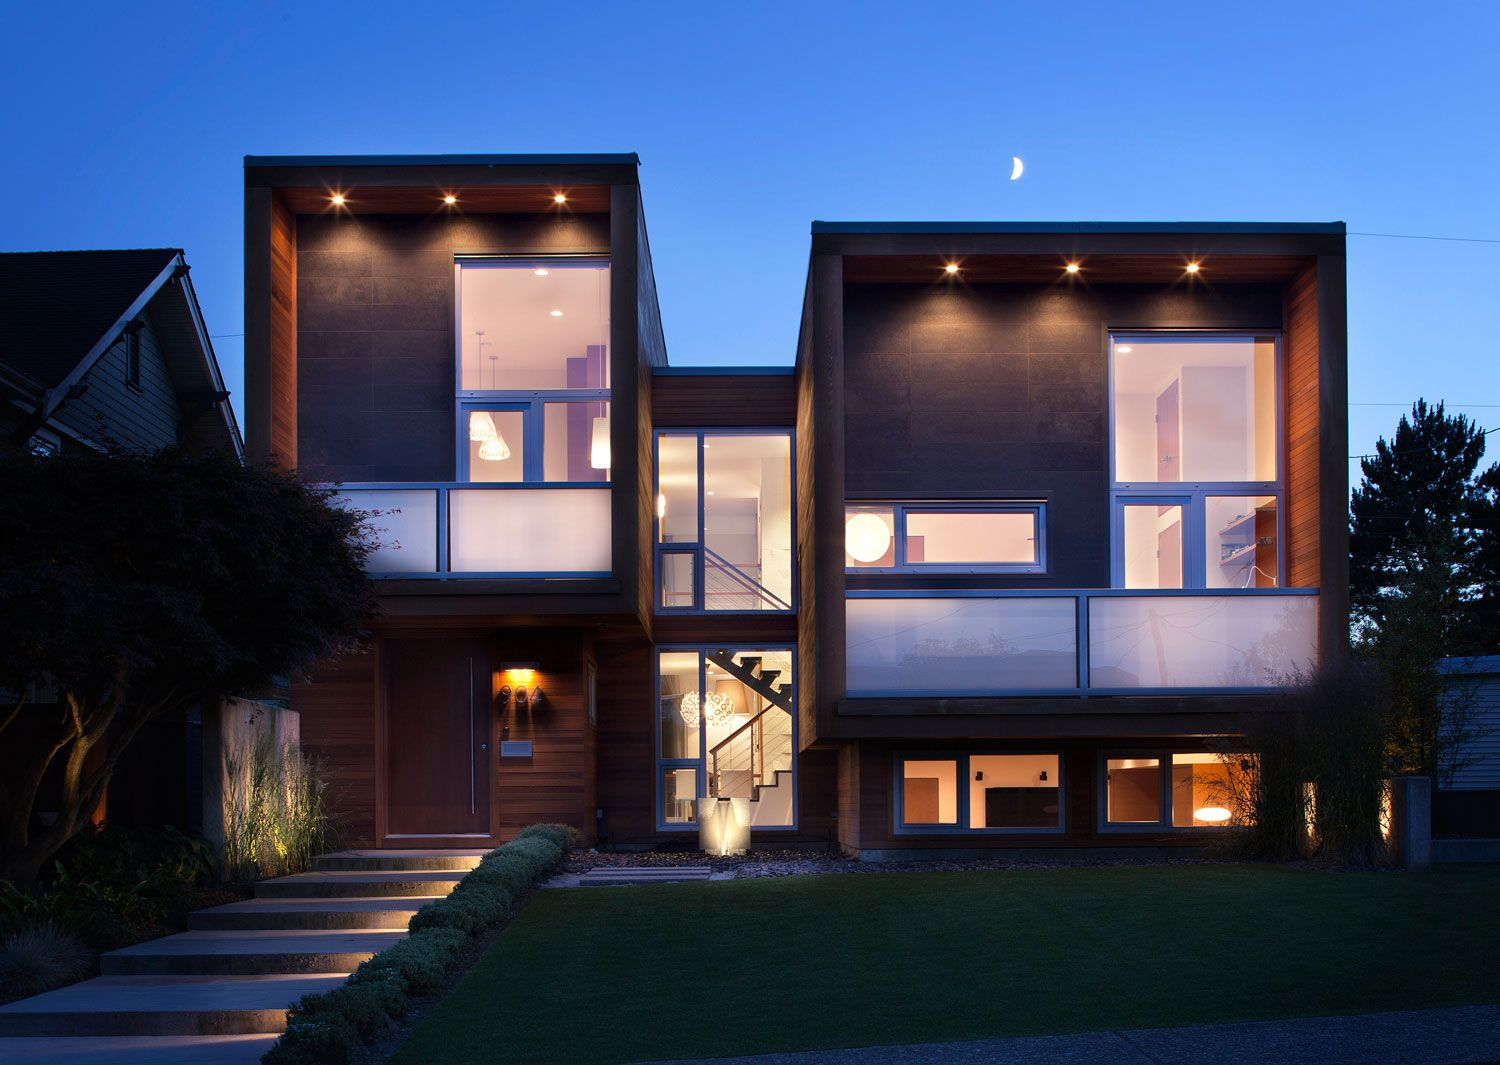 Architecture Front Yard Modern Cube House Lighting Ideas With